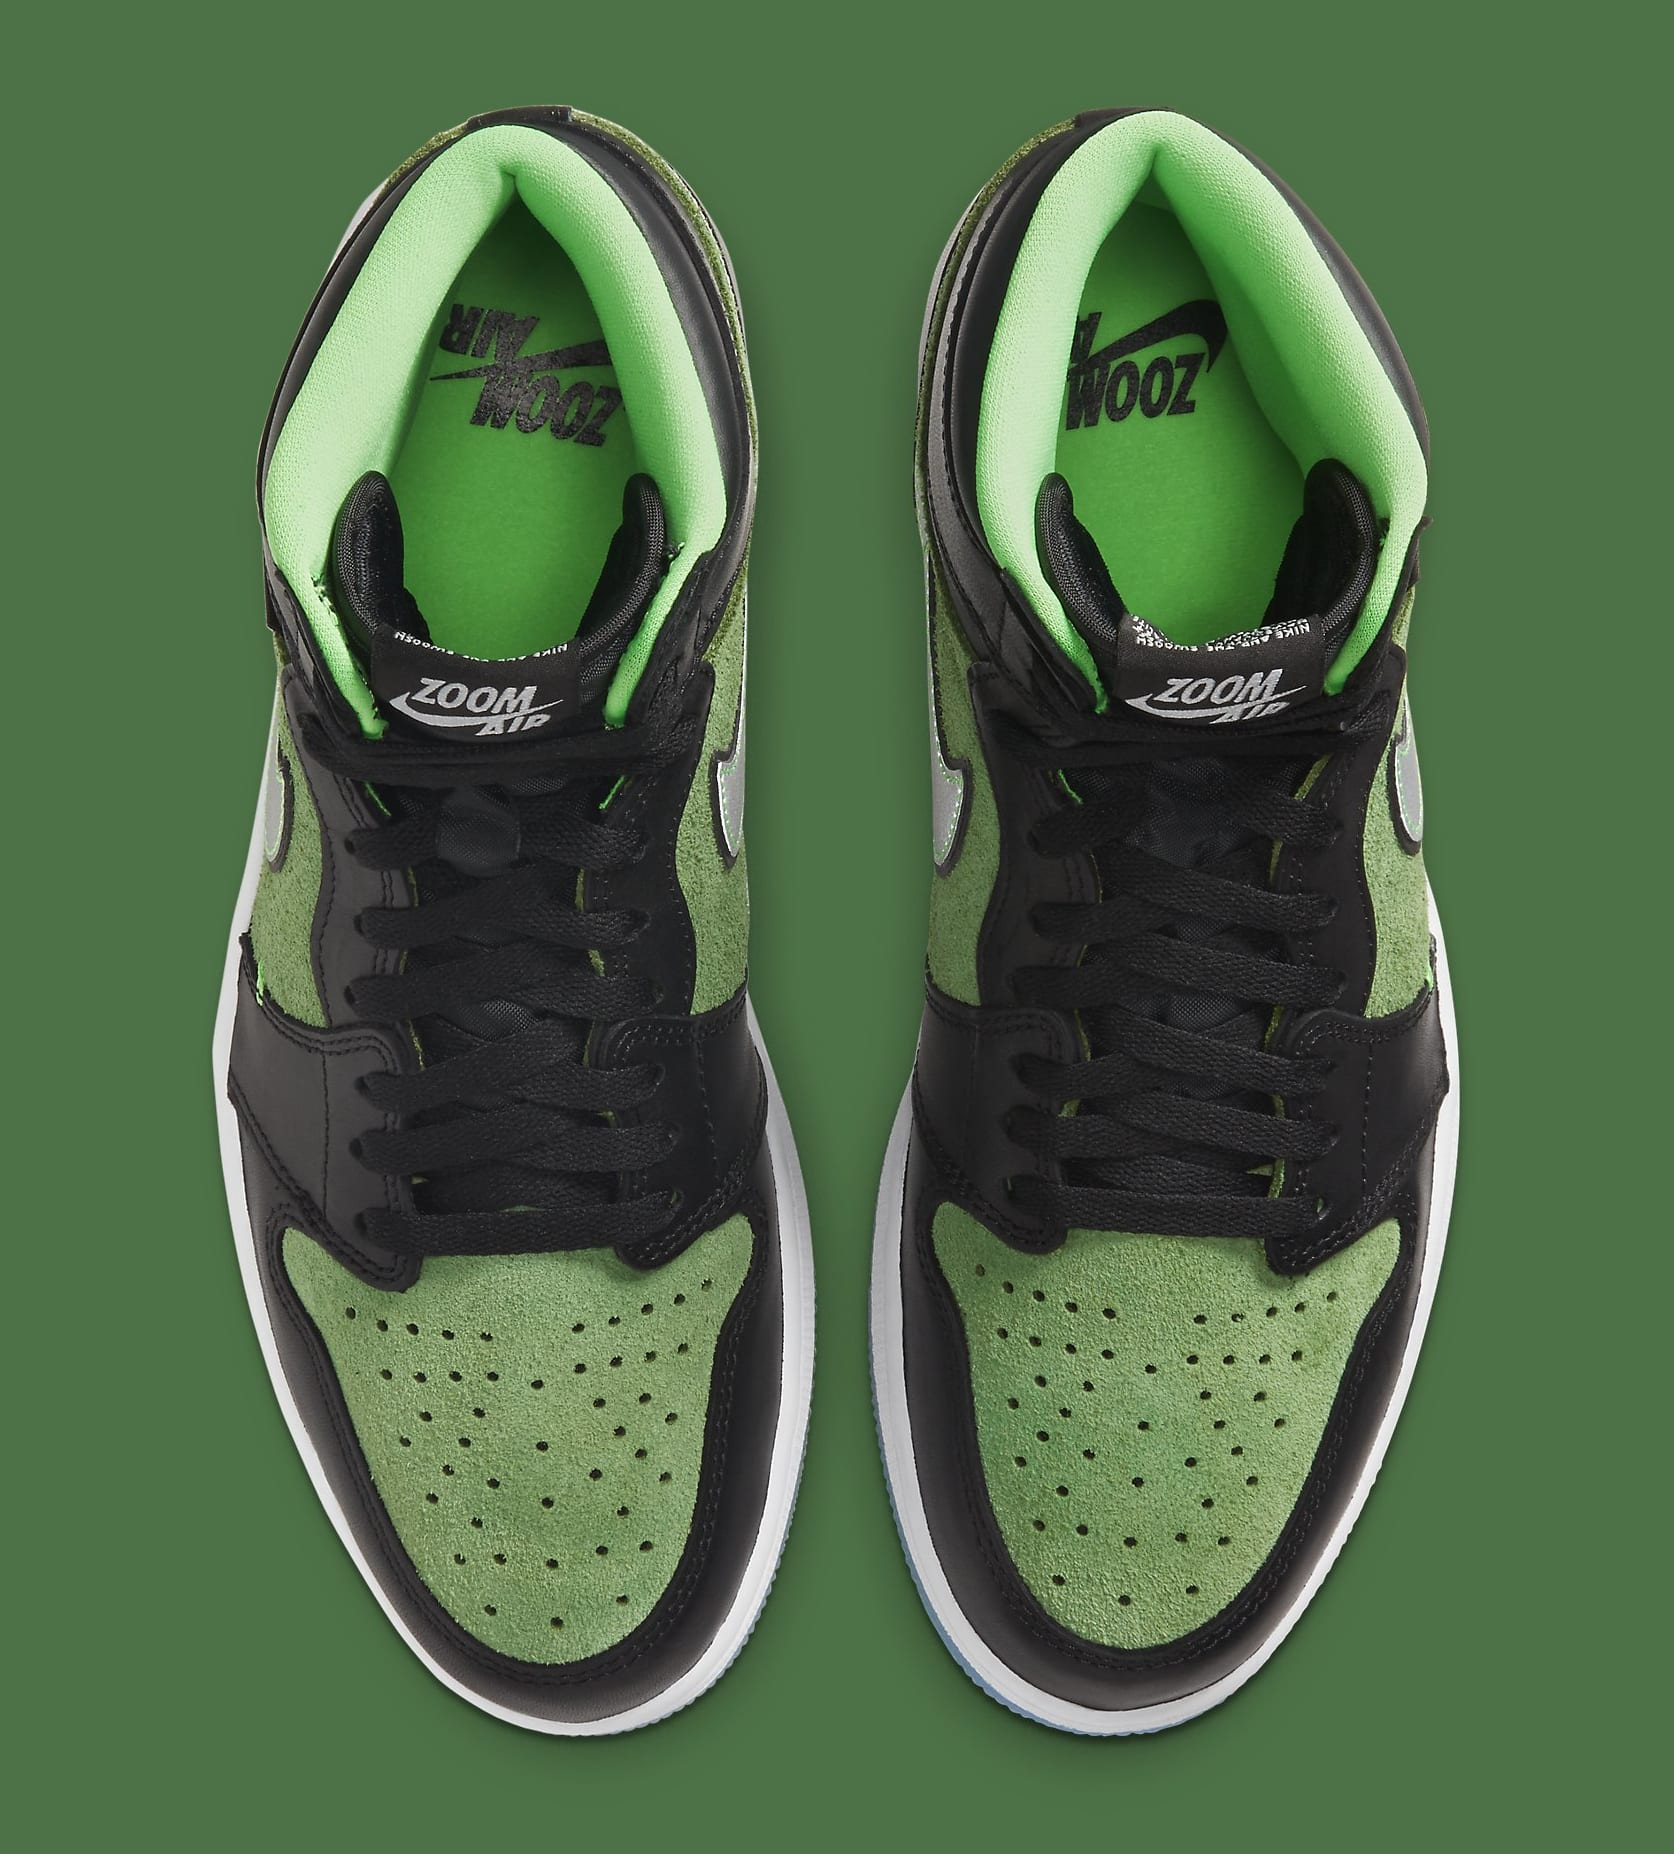 Air Jordan 1 High Zoom 'Rage Green' CK6637-002 Top